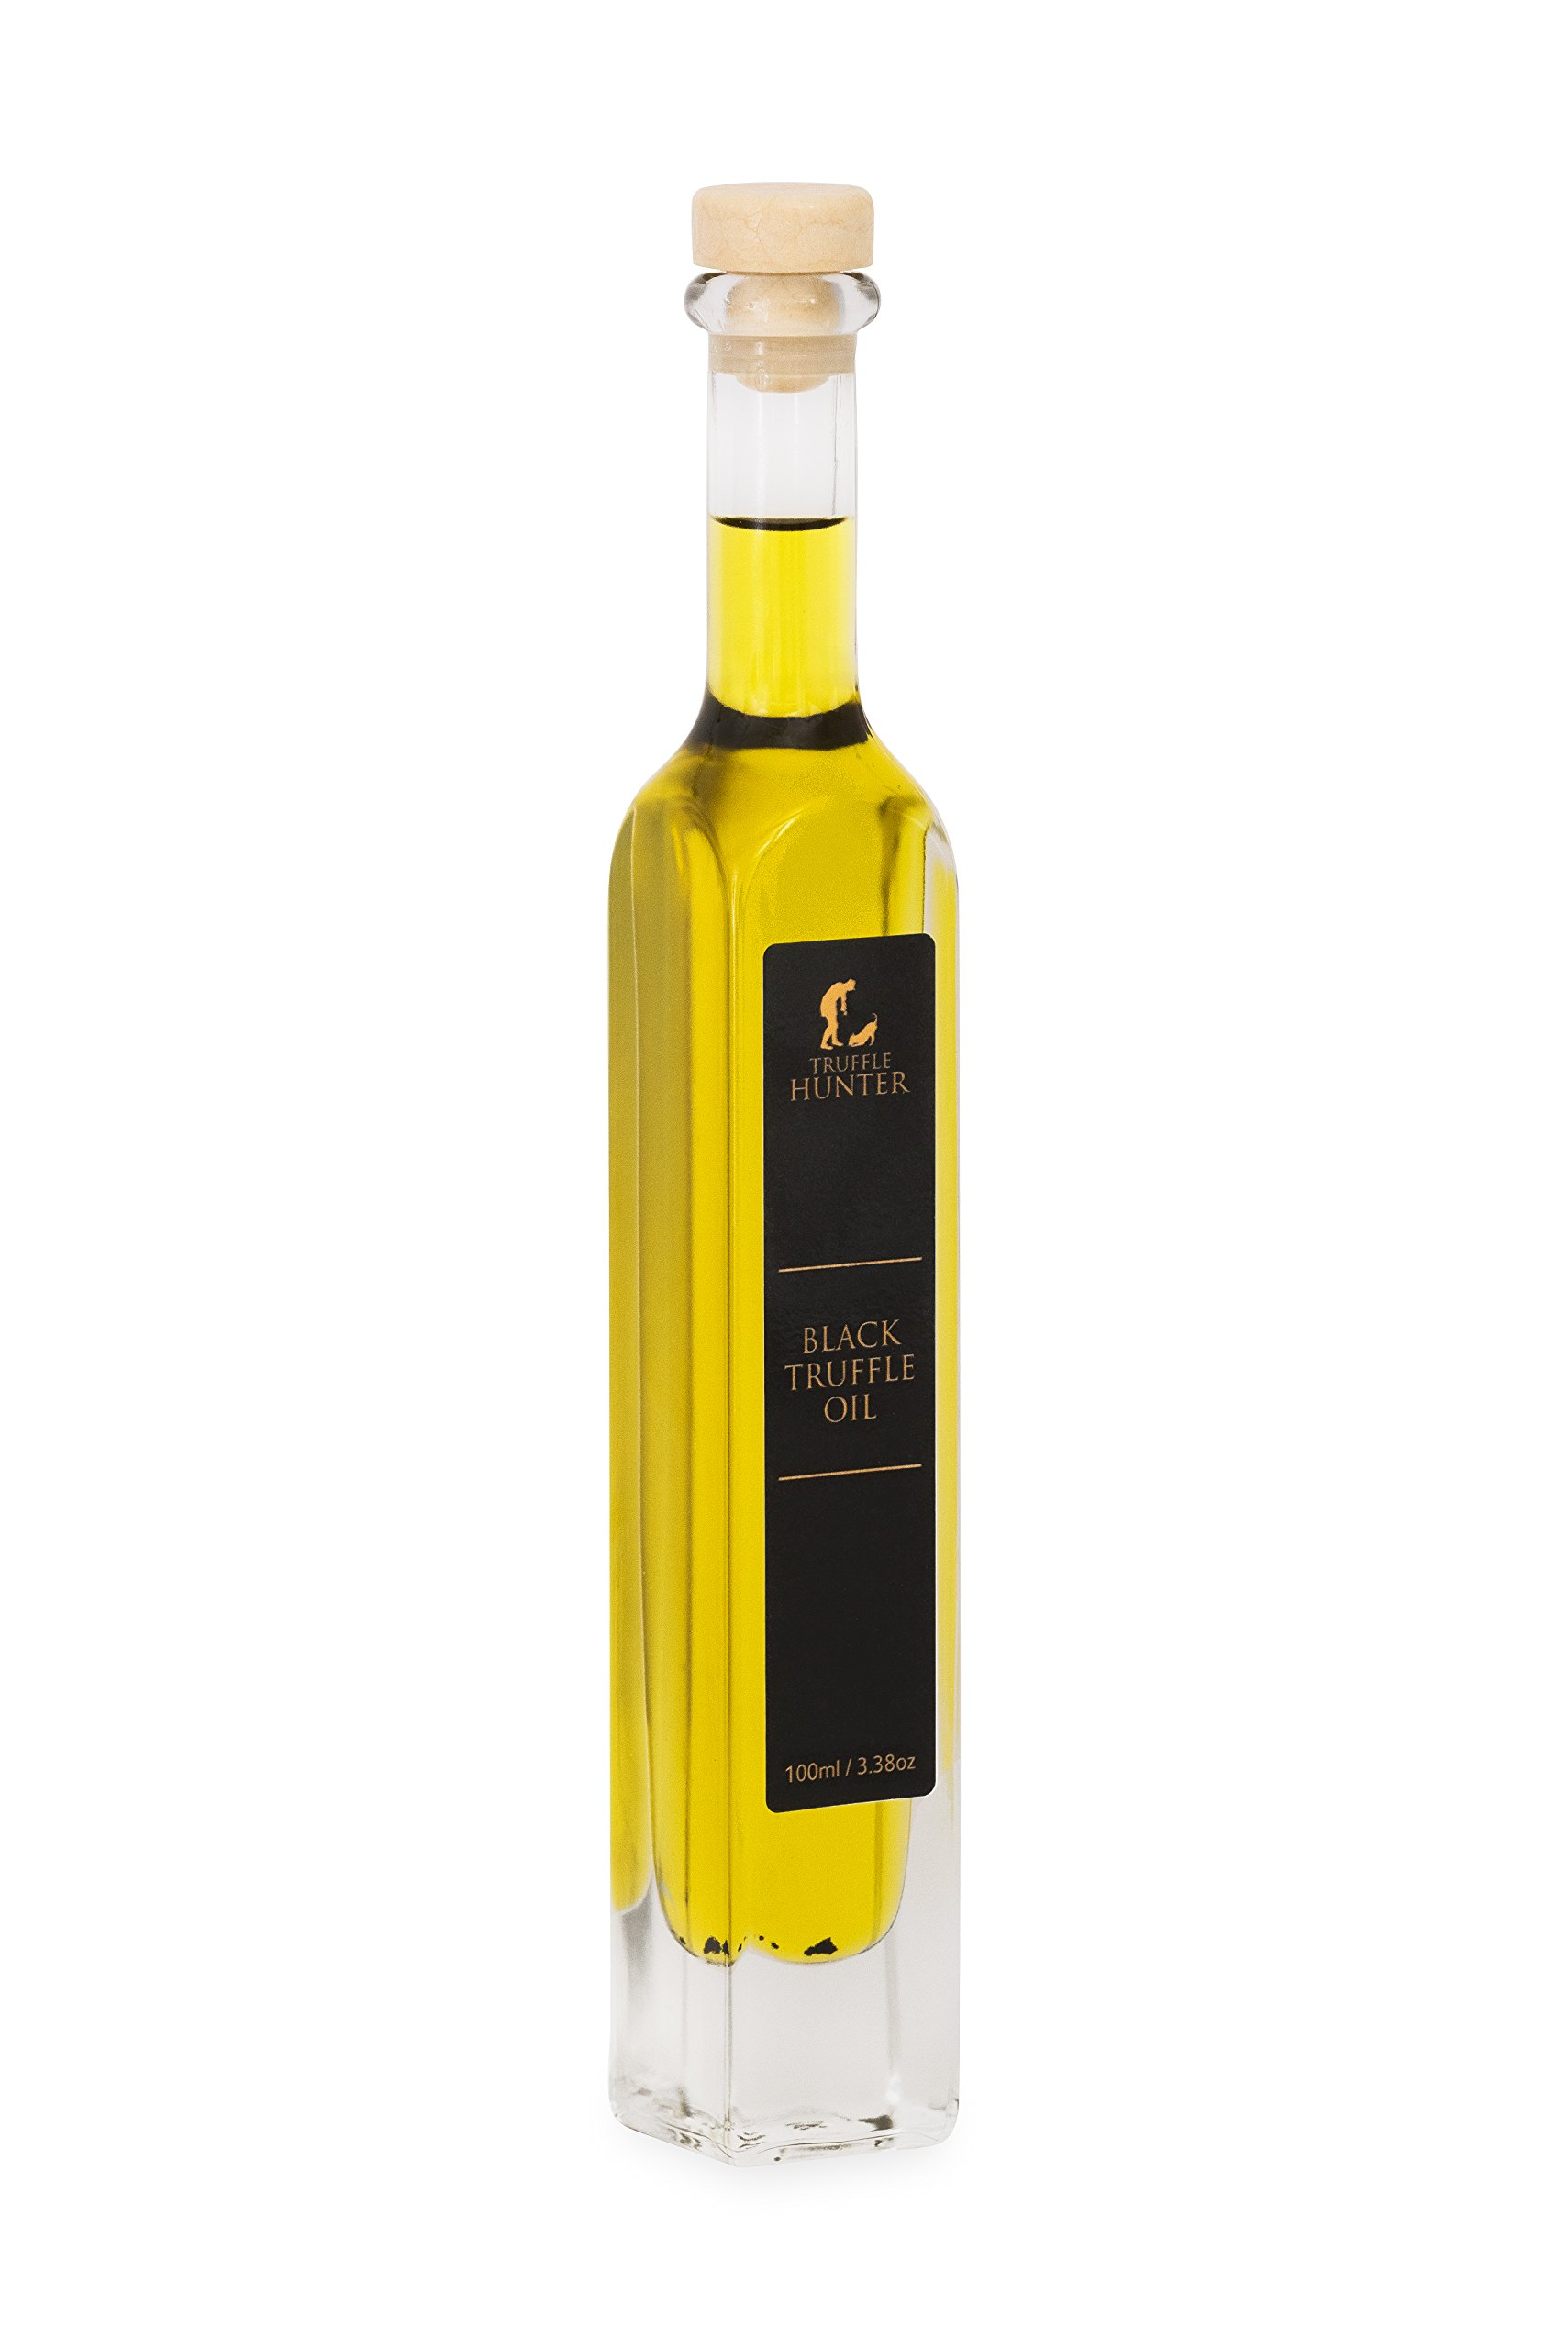 TruffleHunter Black Truffle Oil (3.38 Oz) [Double Concentrated]